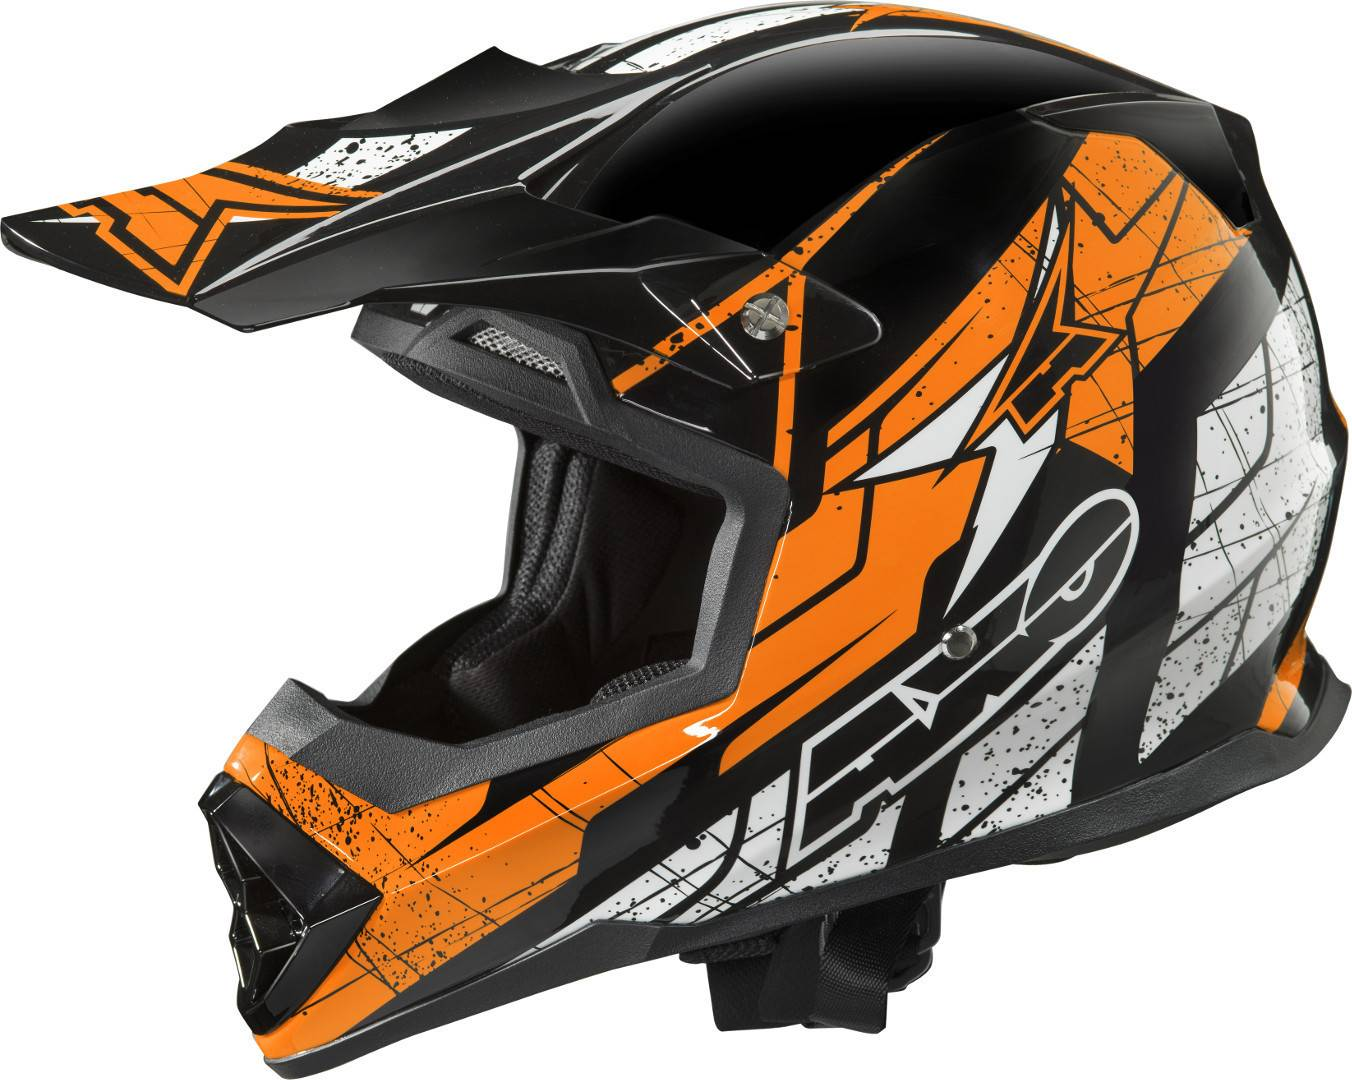 AXO Tribe Casco di motocross